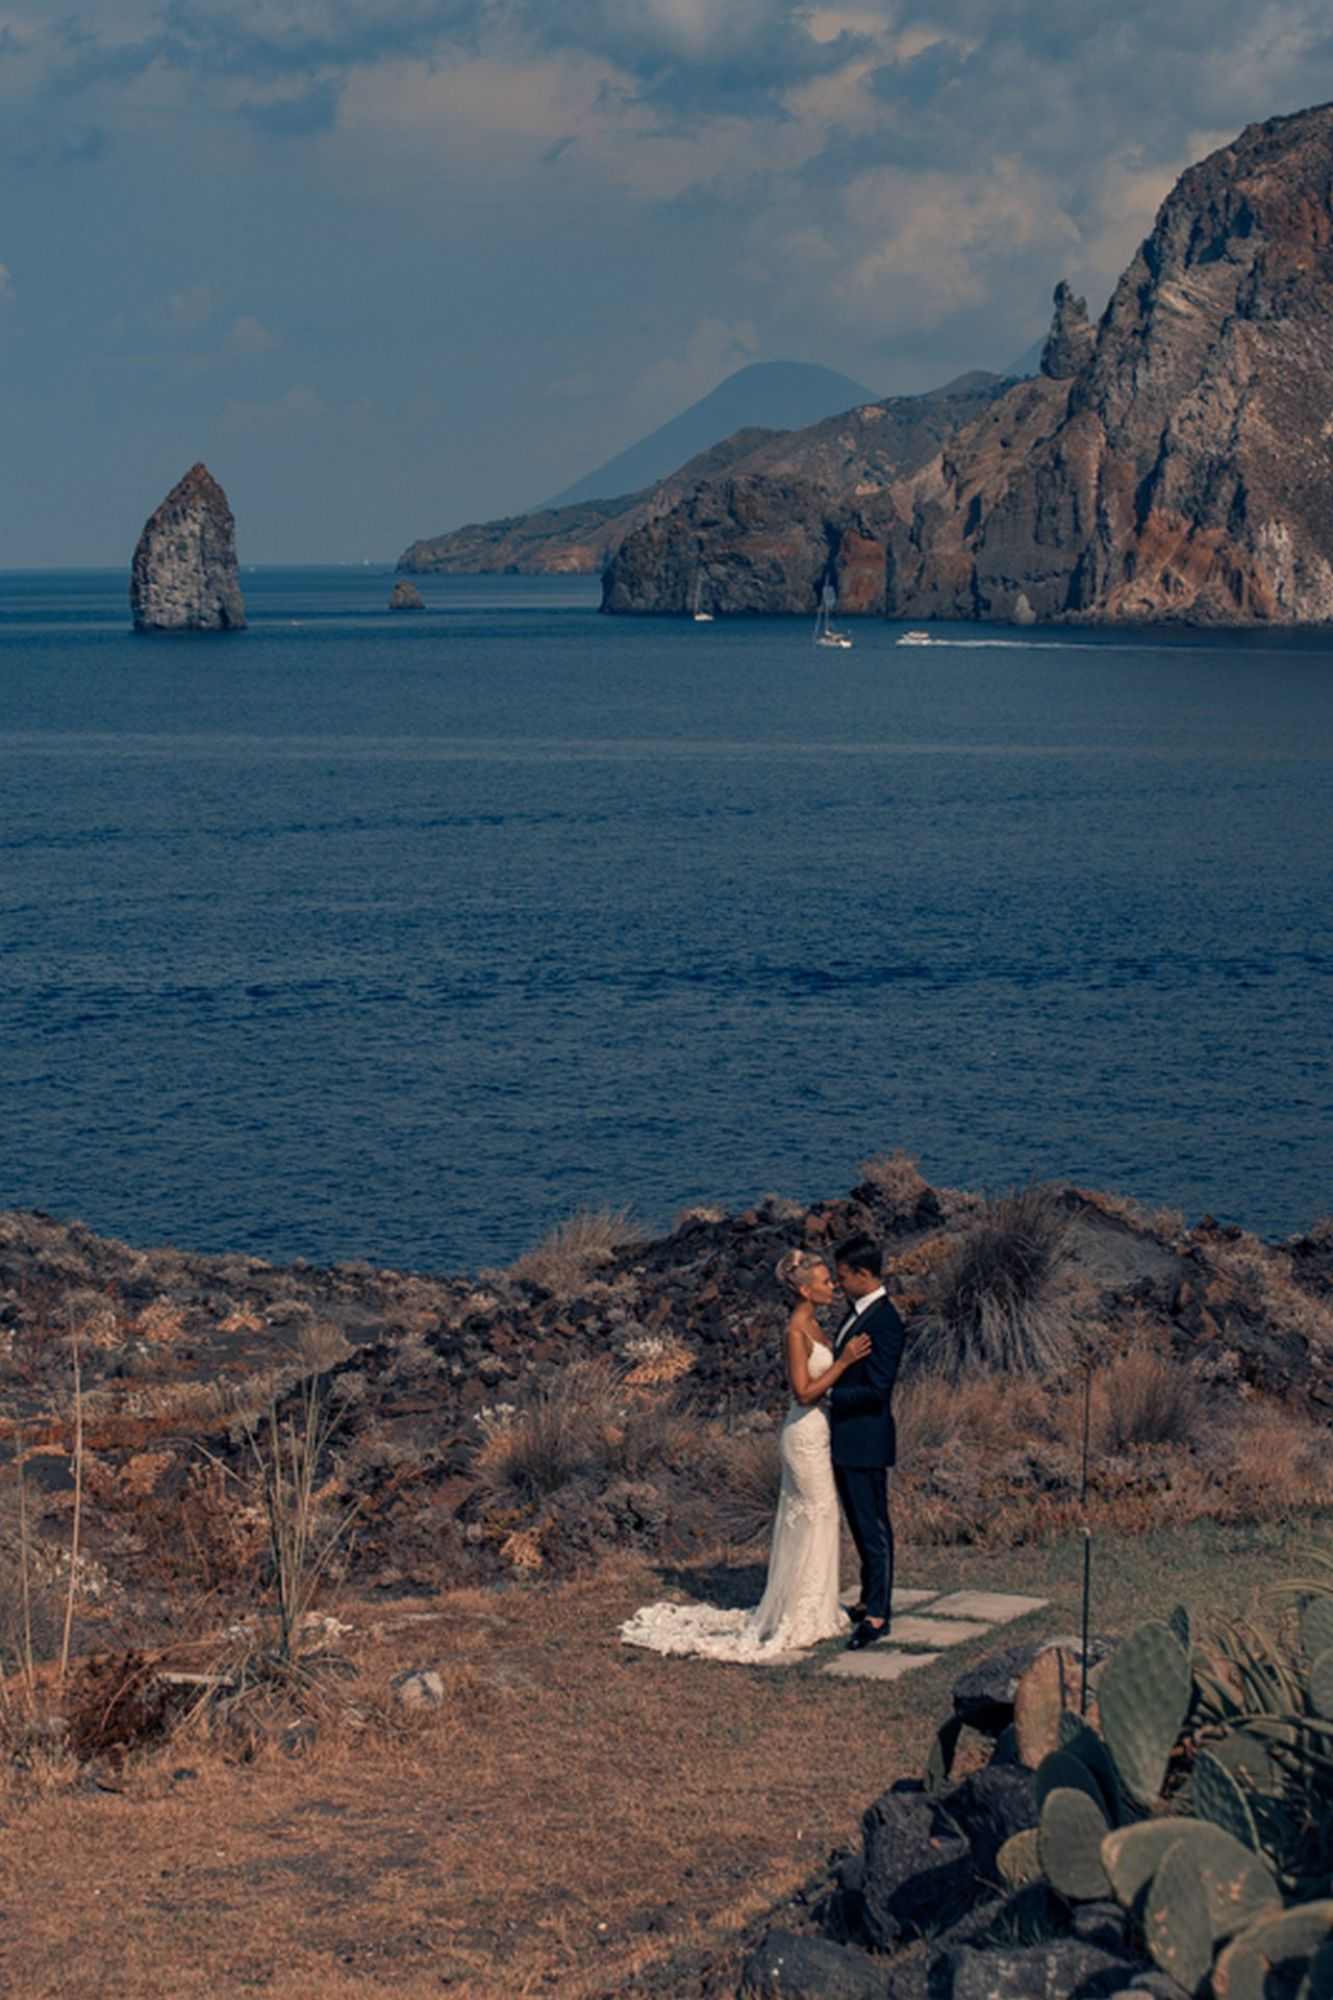 Click to enlarge image matrimonio-nikki-giuseppe-chiello-masterphotographer-sicily-wedding 5.jpg